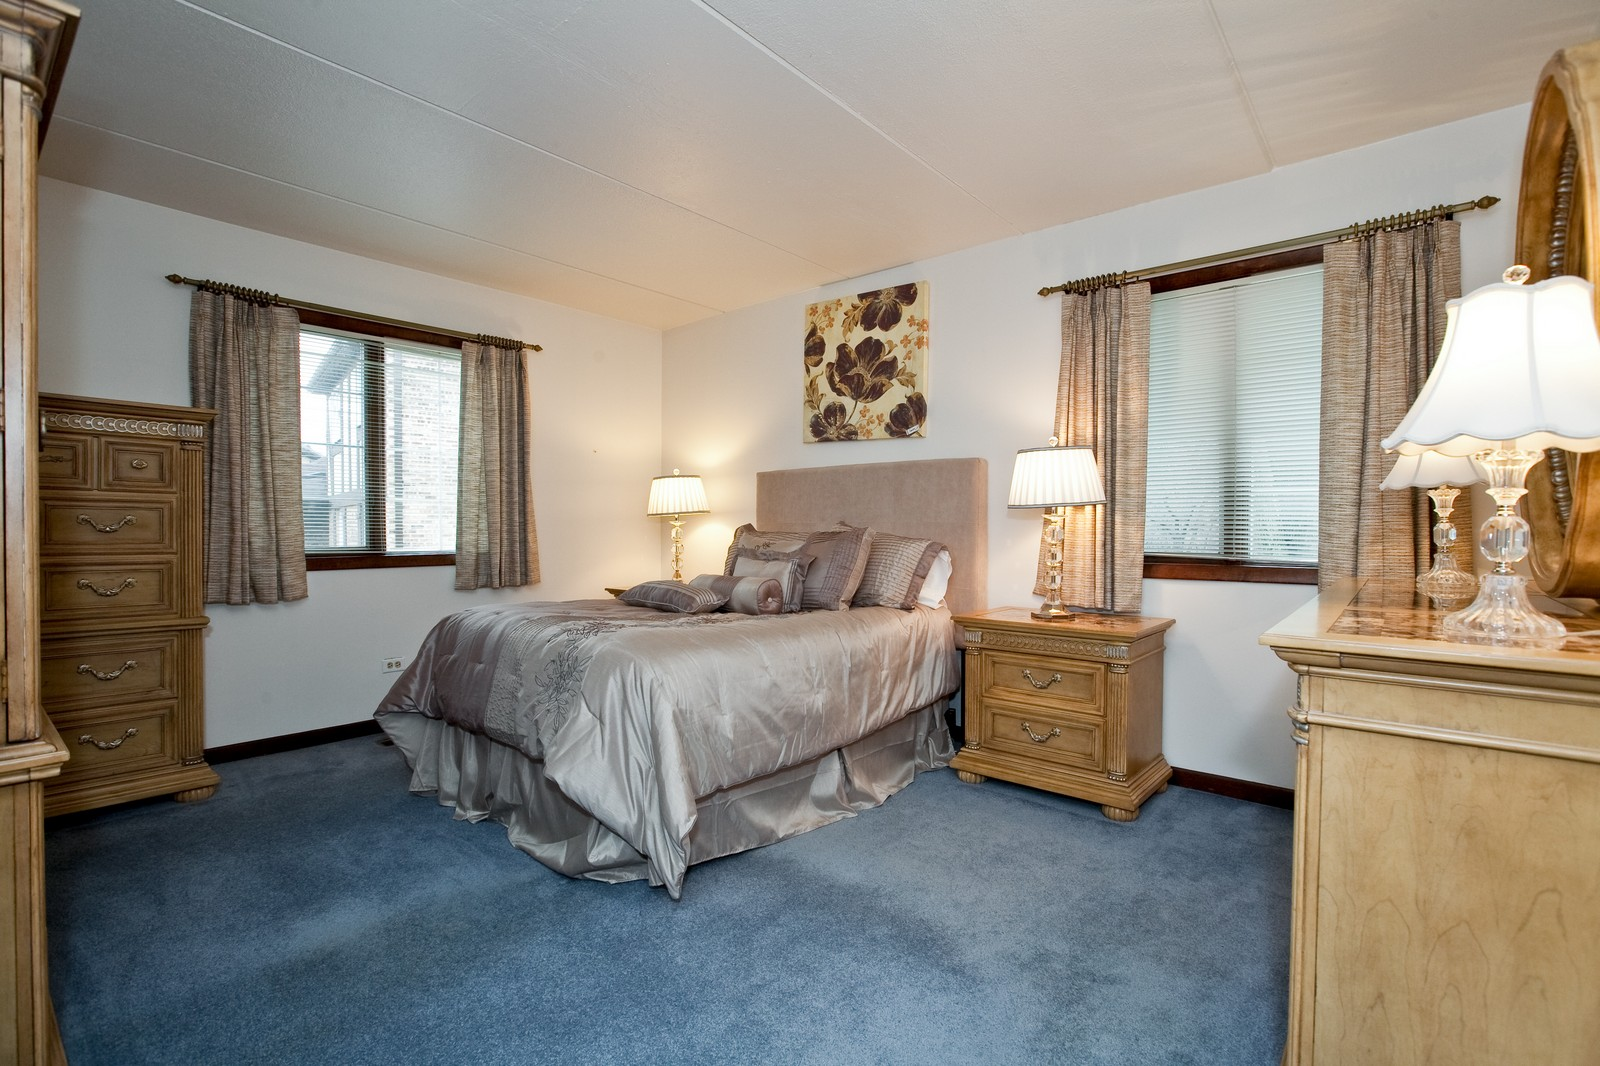 Real Estate Photography - 35 Shawnee Trl, Indian Head Park, IL, 60525 - Master Bedroom